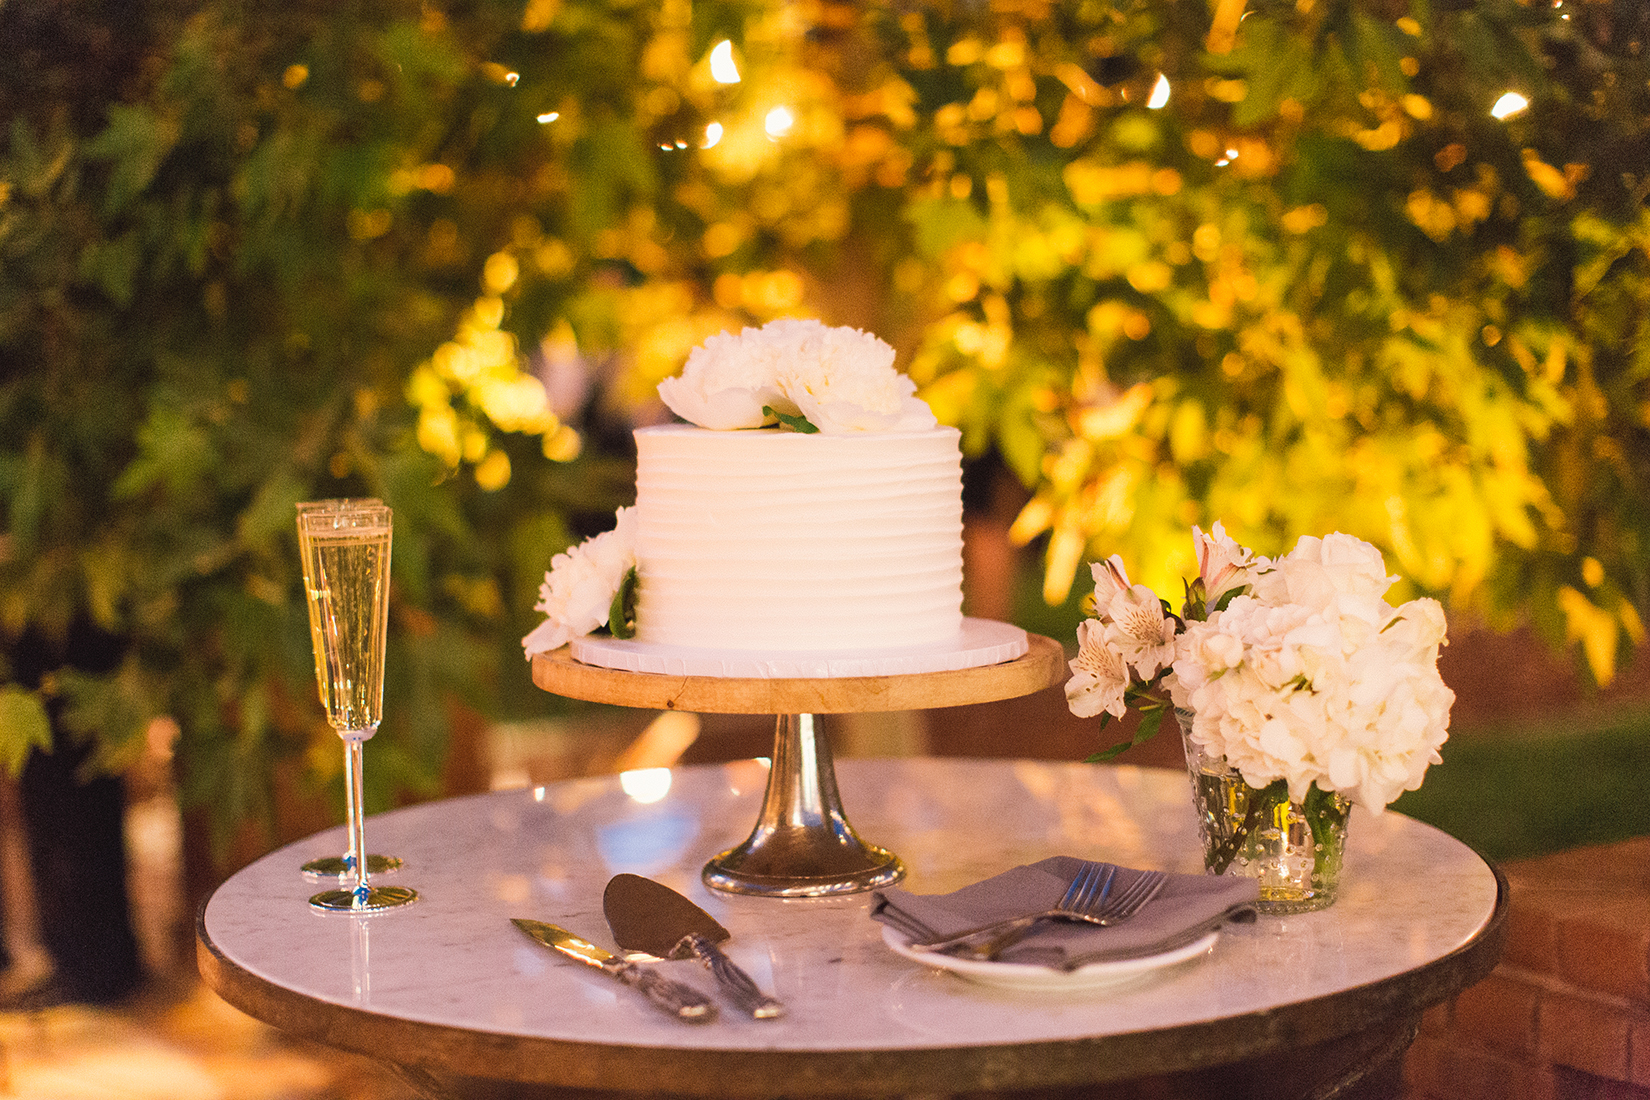 An image of the wedding cake top with white roses, glasses of champagne, and a white hydrangea floral arrangement